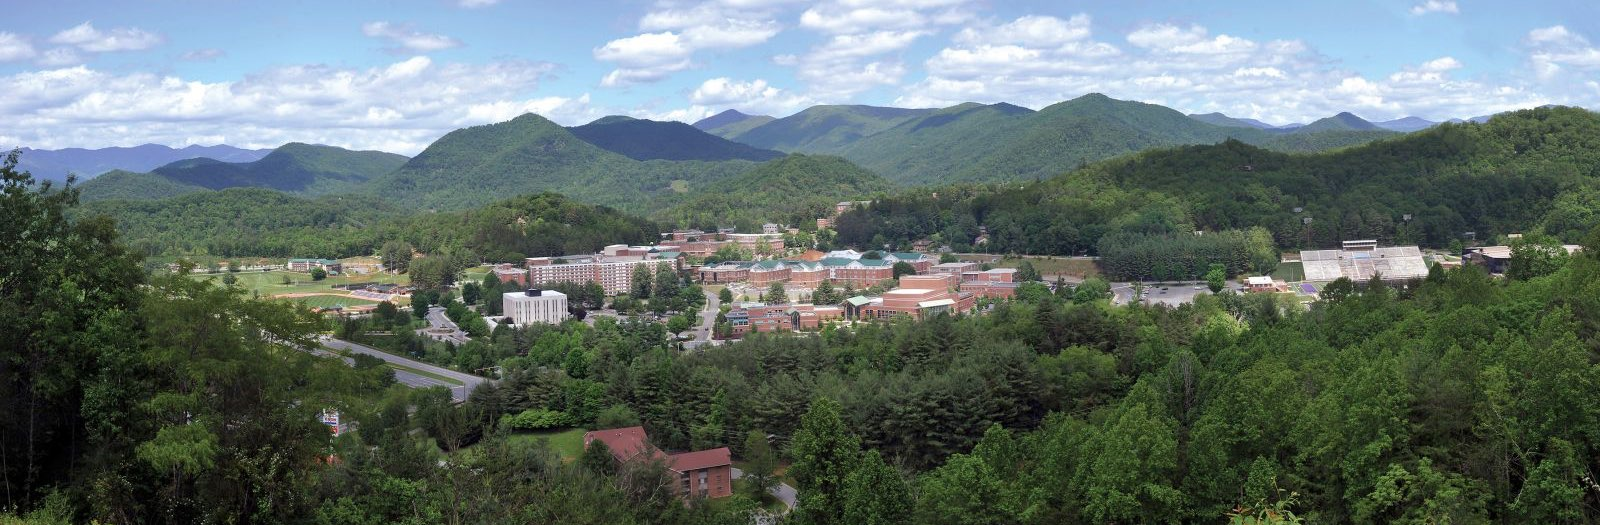 Photo of Cullowhee